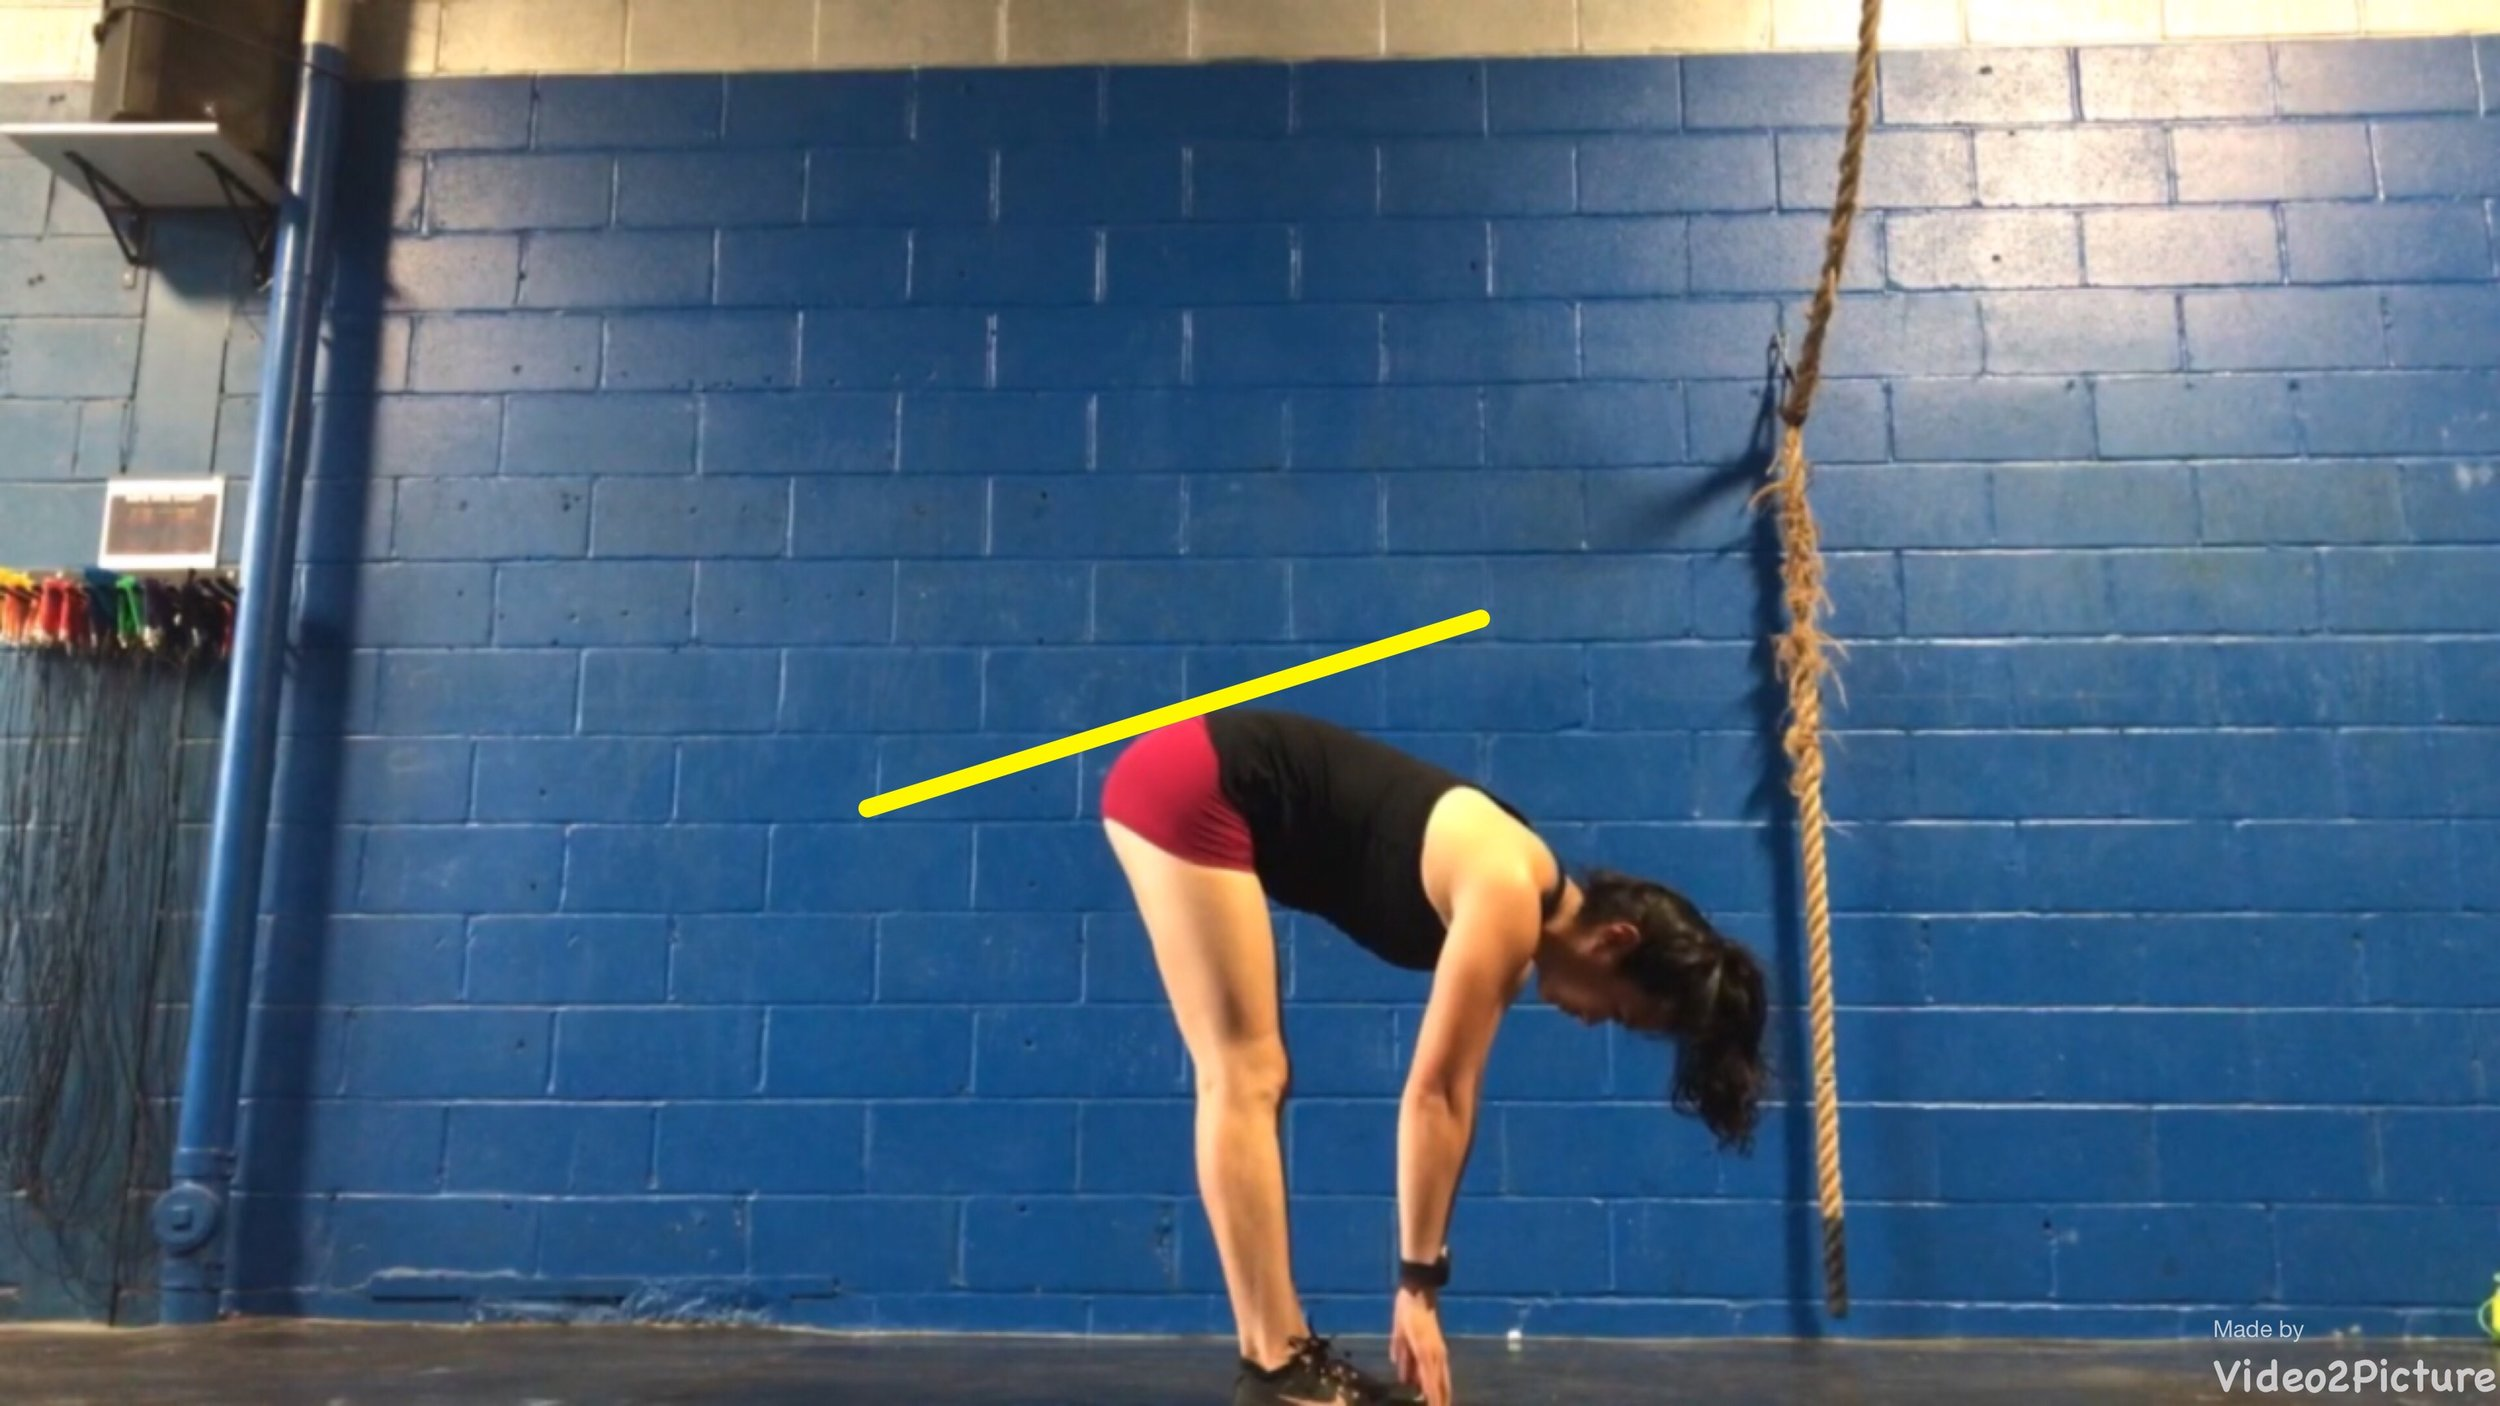 Mobile hamstrings allow forward tilt of your pelvis, which allows for proper positioning in a hip hinge.